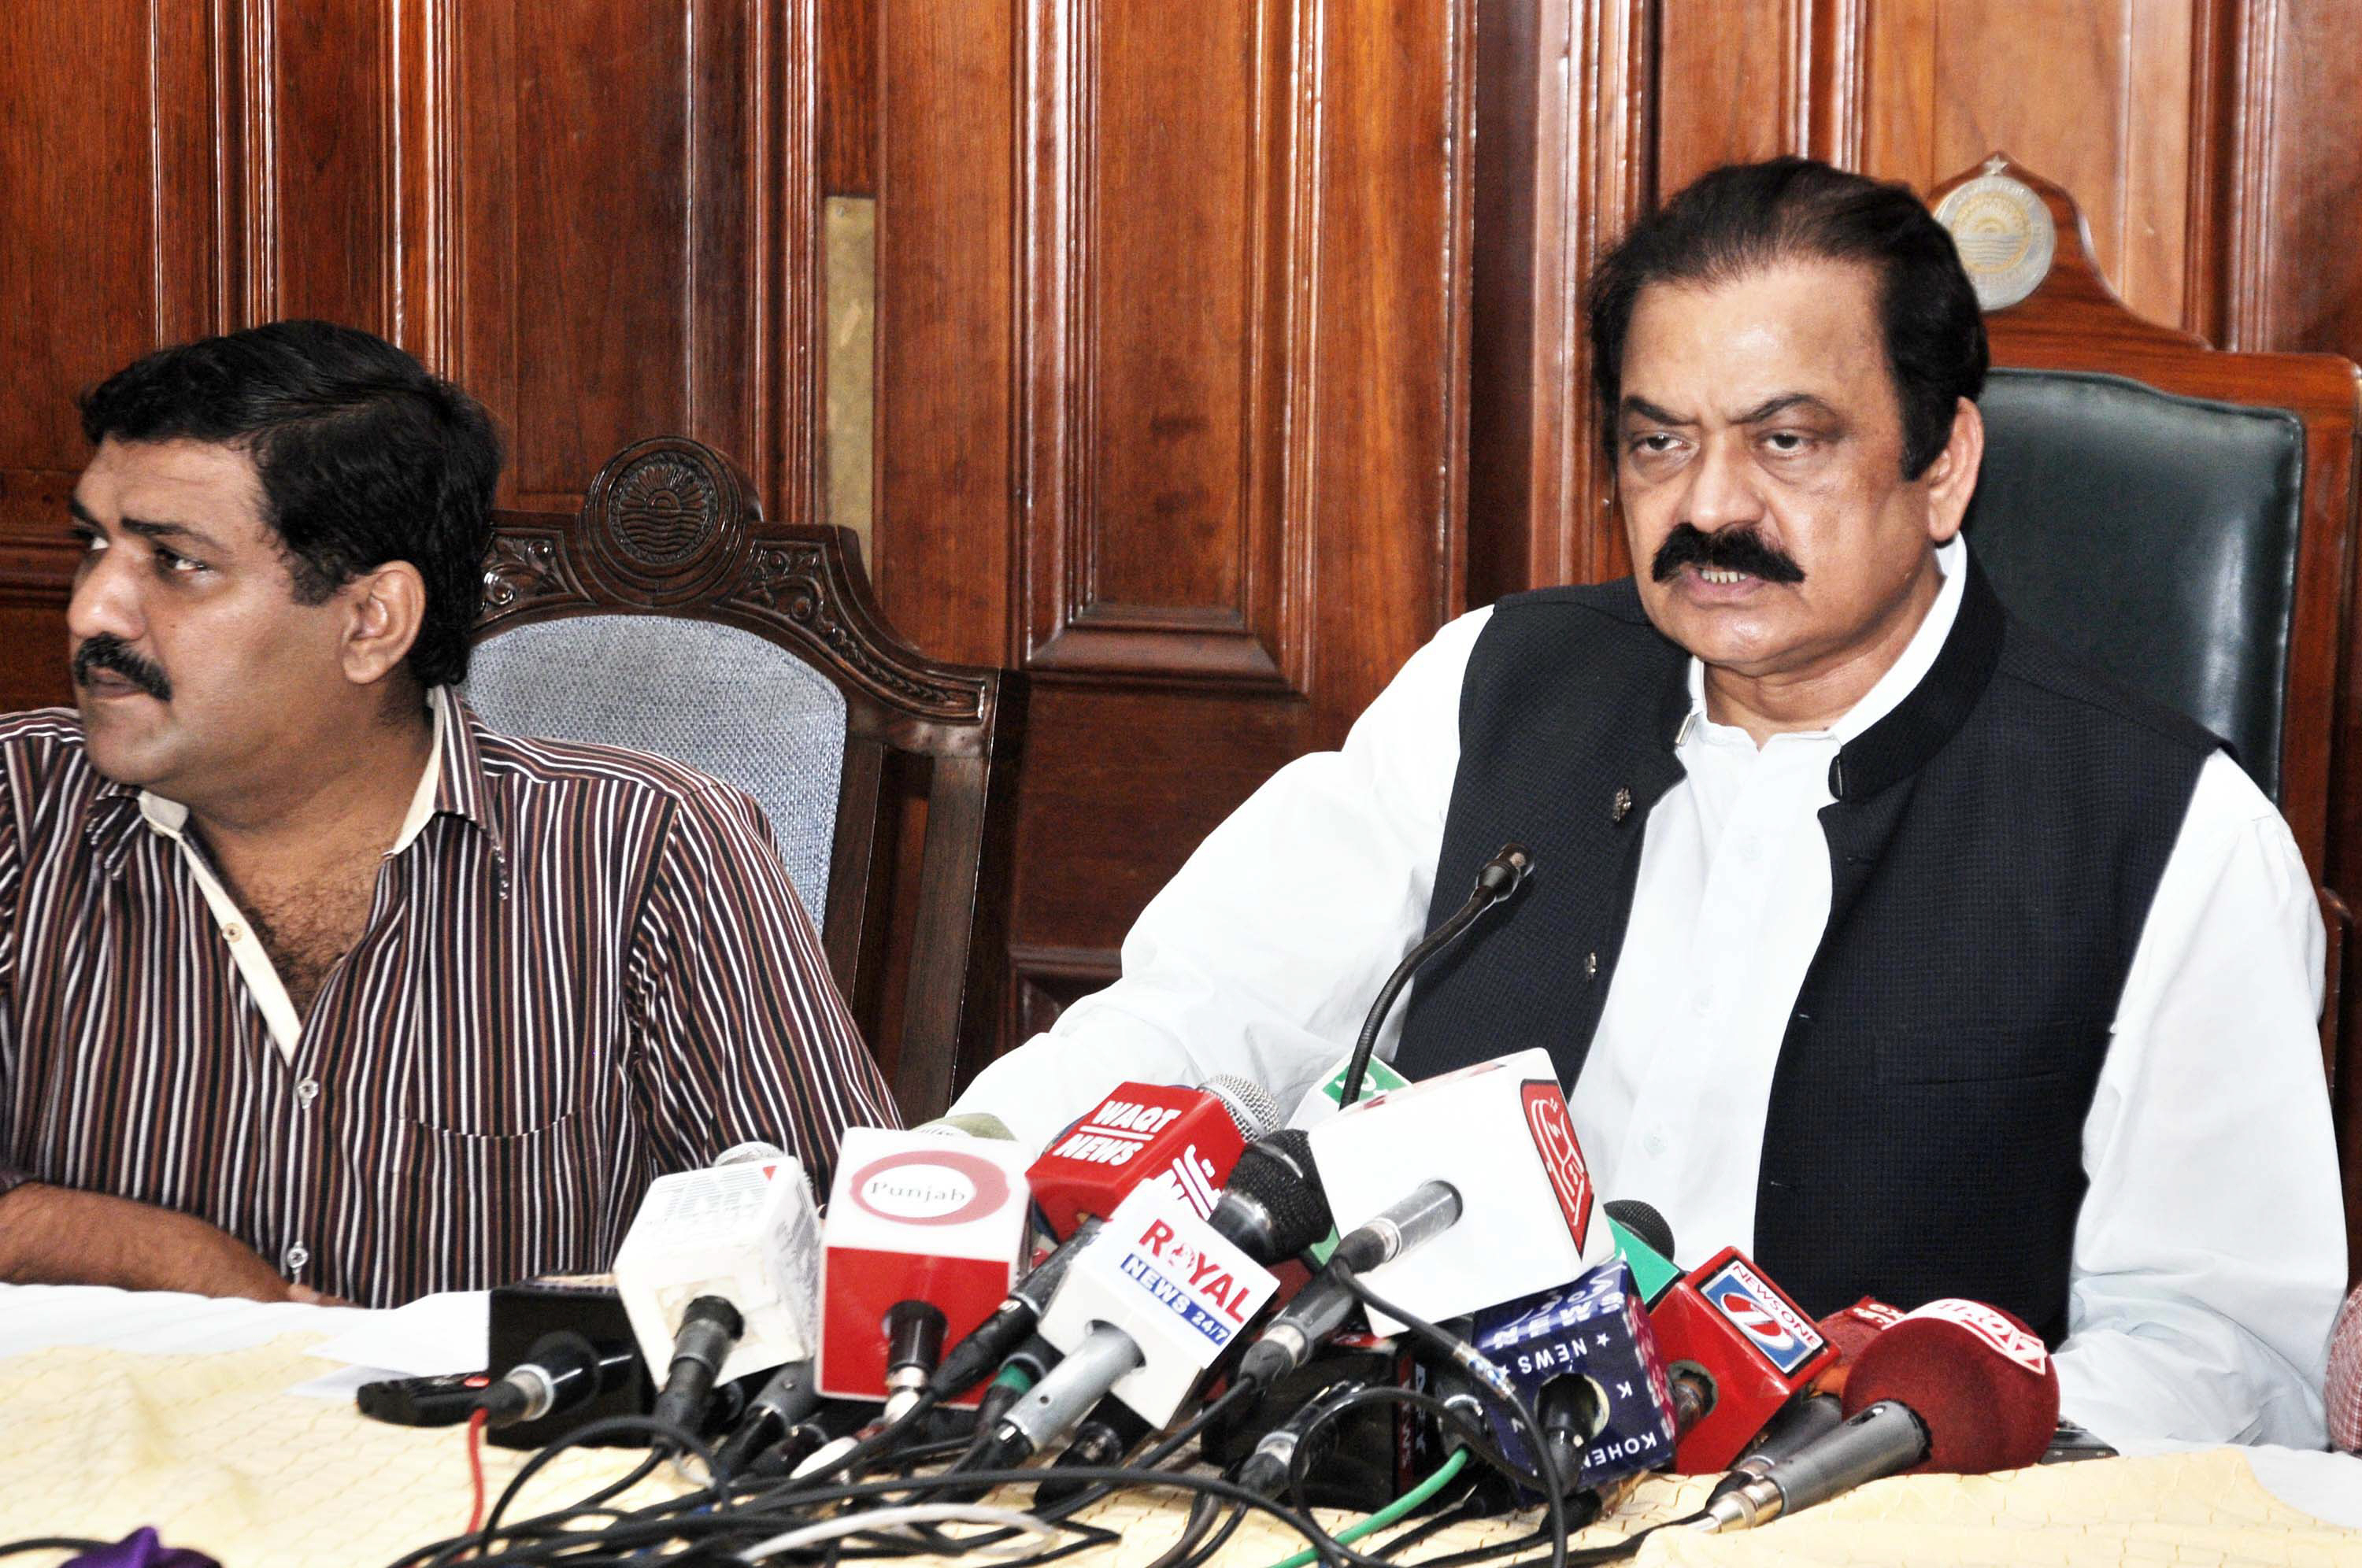 Punjab Law Minister says Punjab CM has ordered IGP to find out facts about the controversy. PHOTO: WASEEM NAZIR/EXPRESS